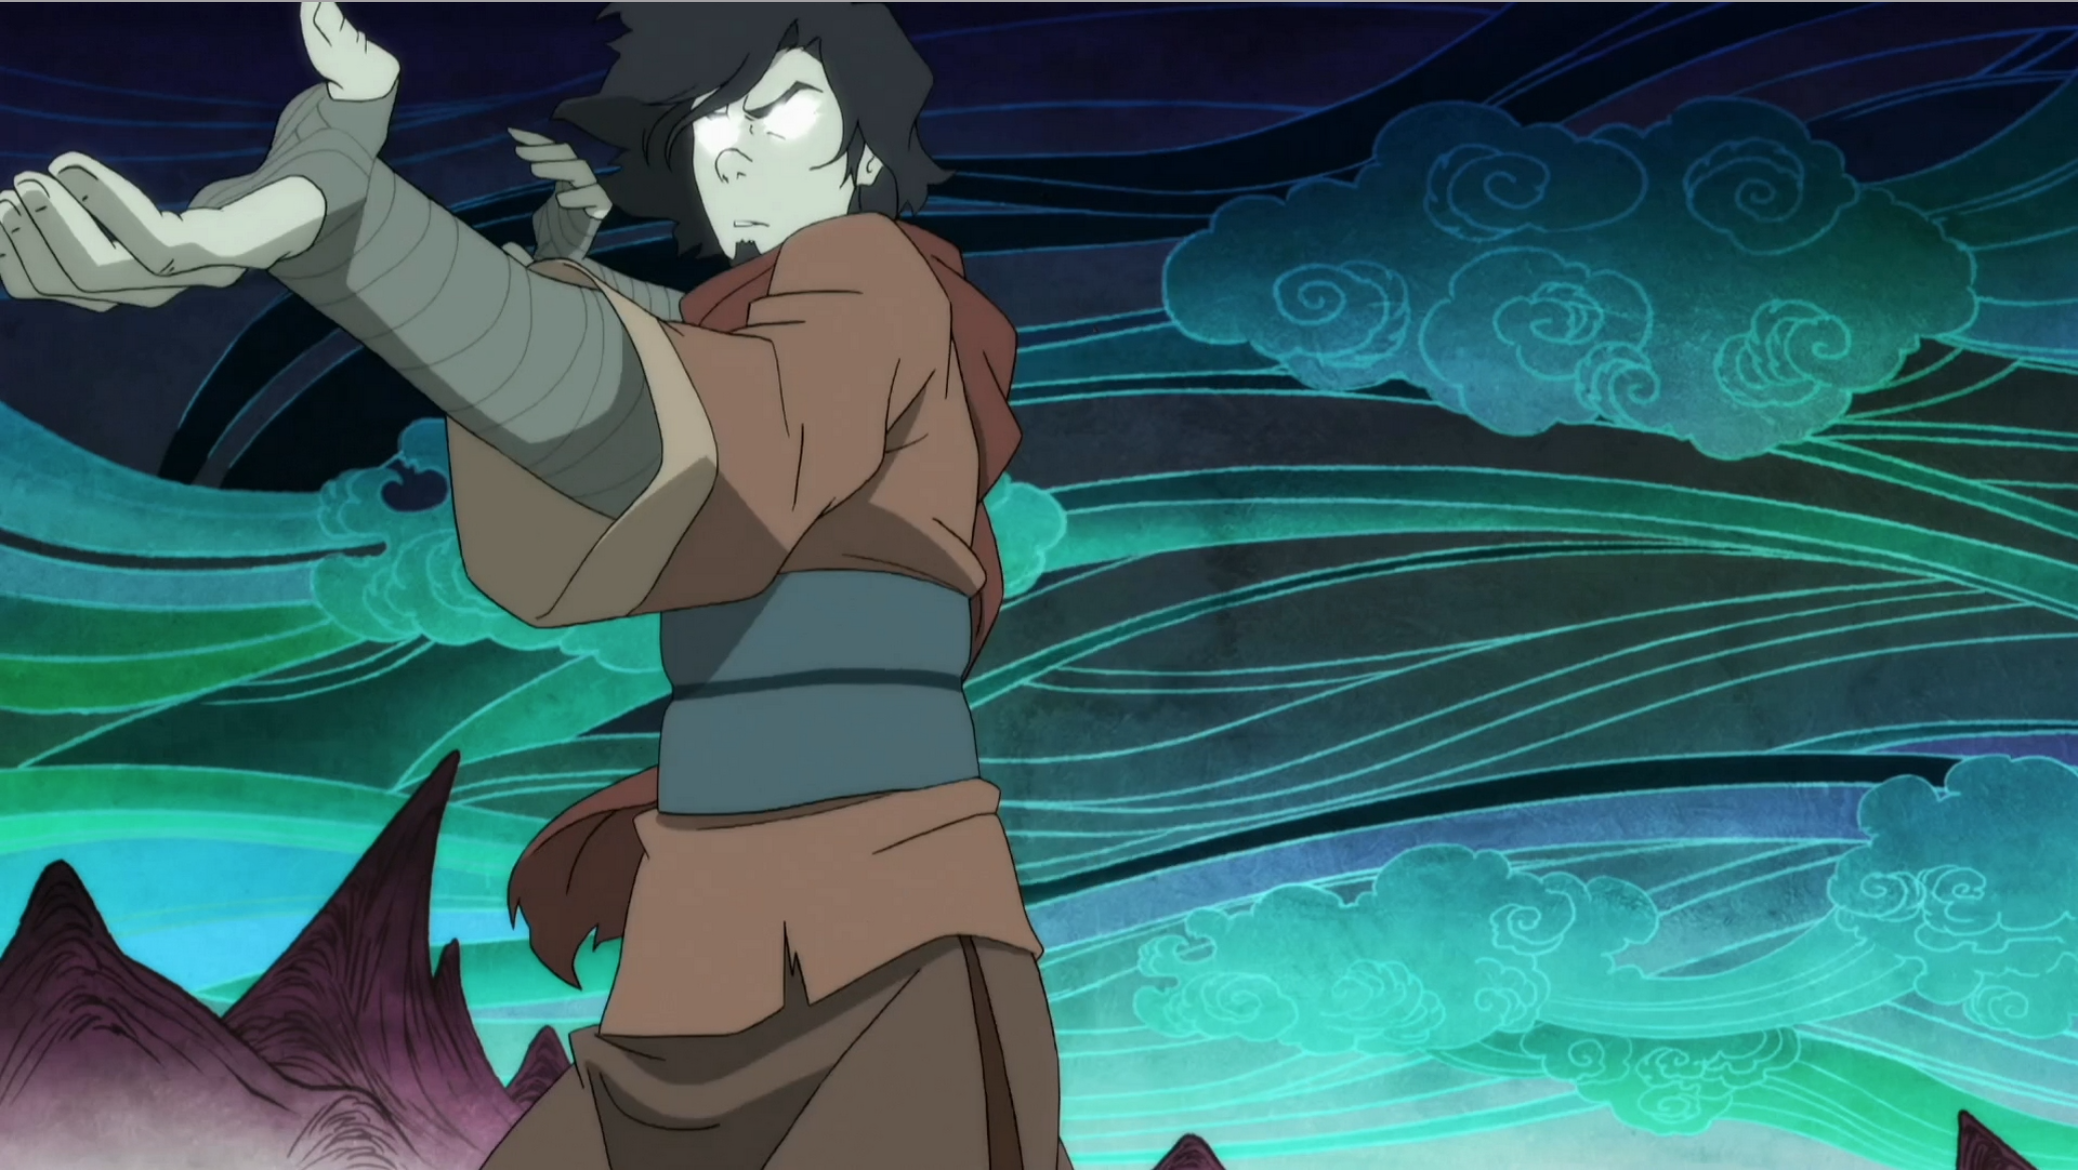 Wan fighting in action against Vaatu from The Legend of